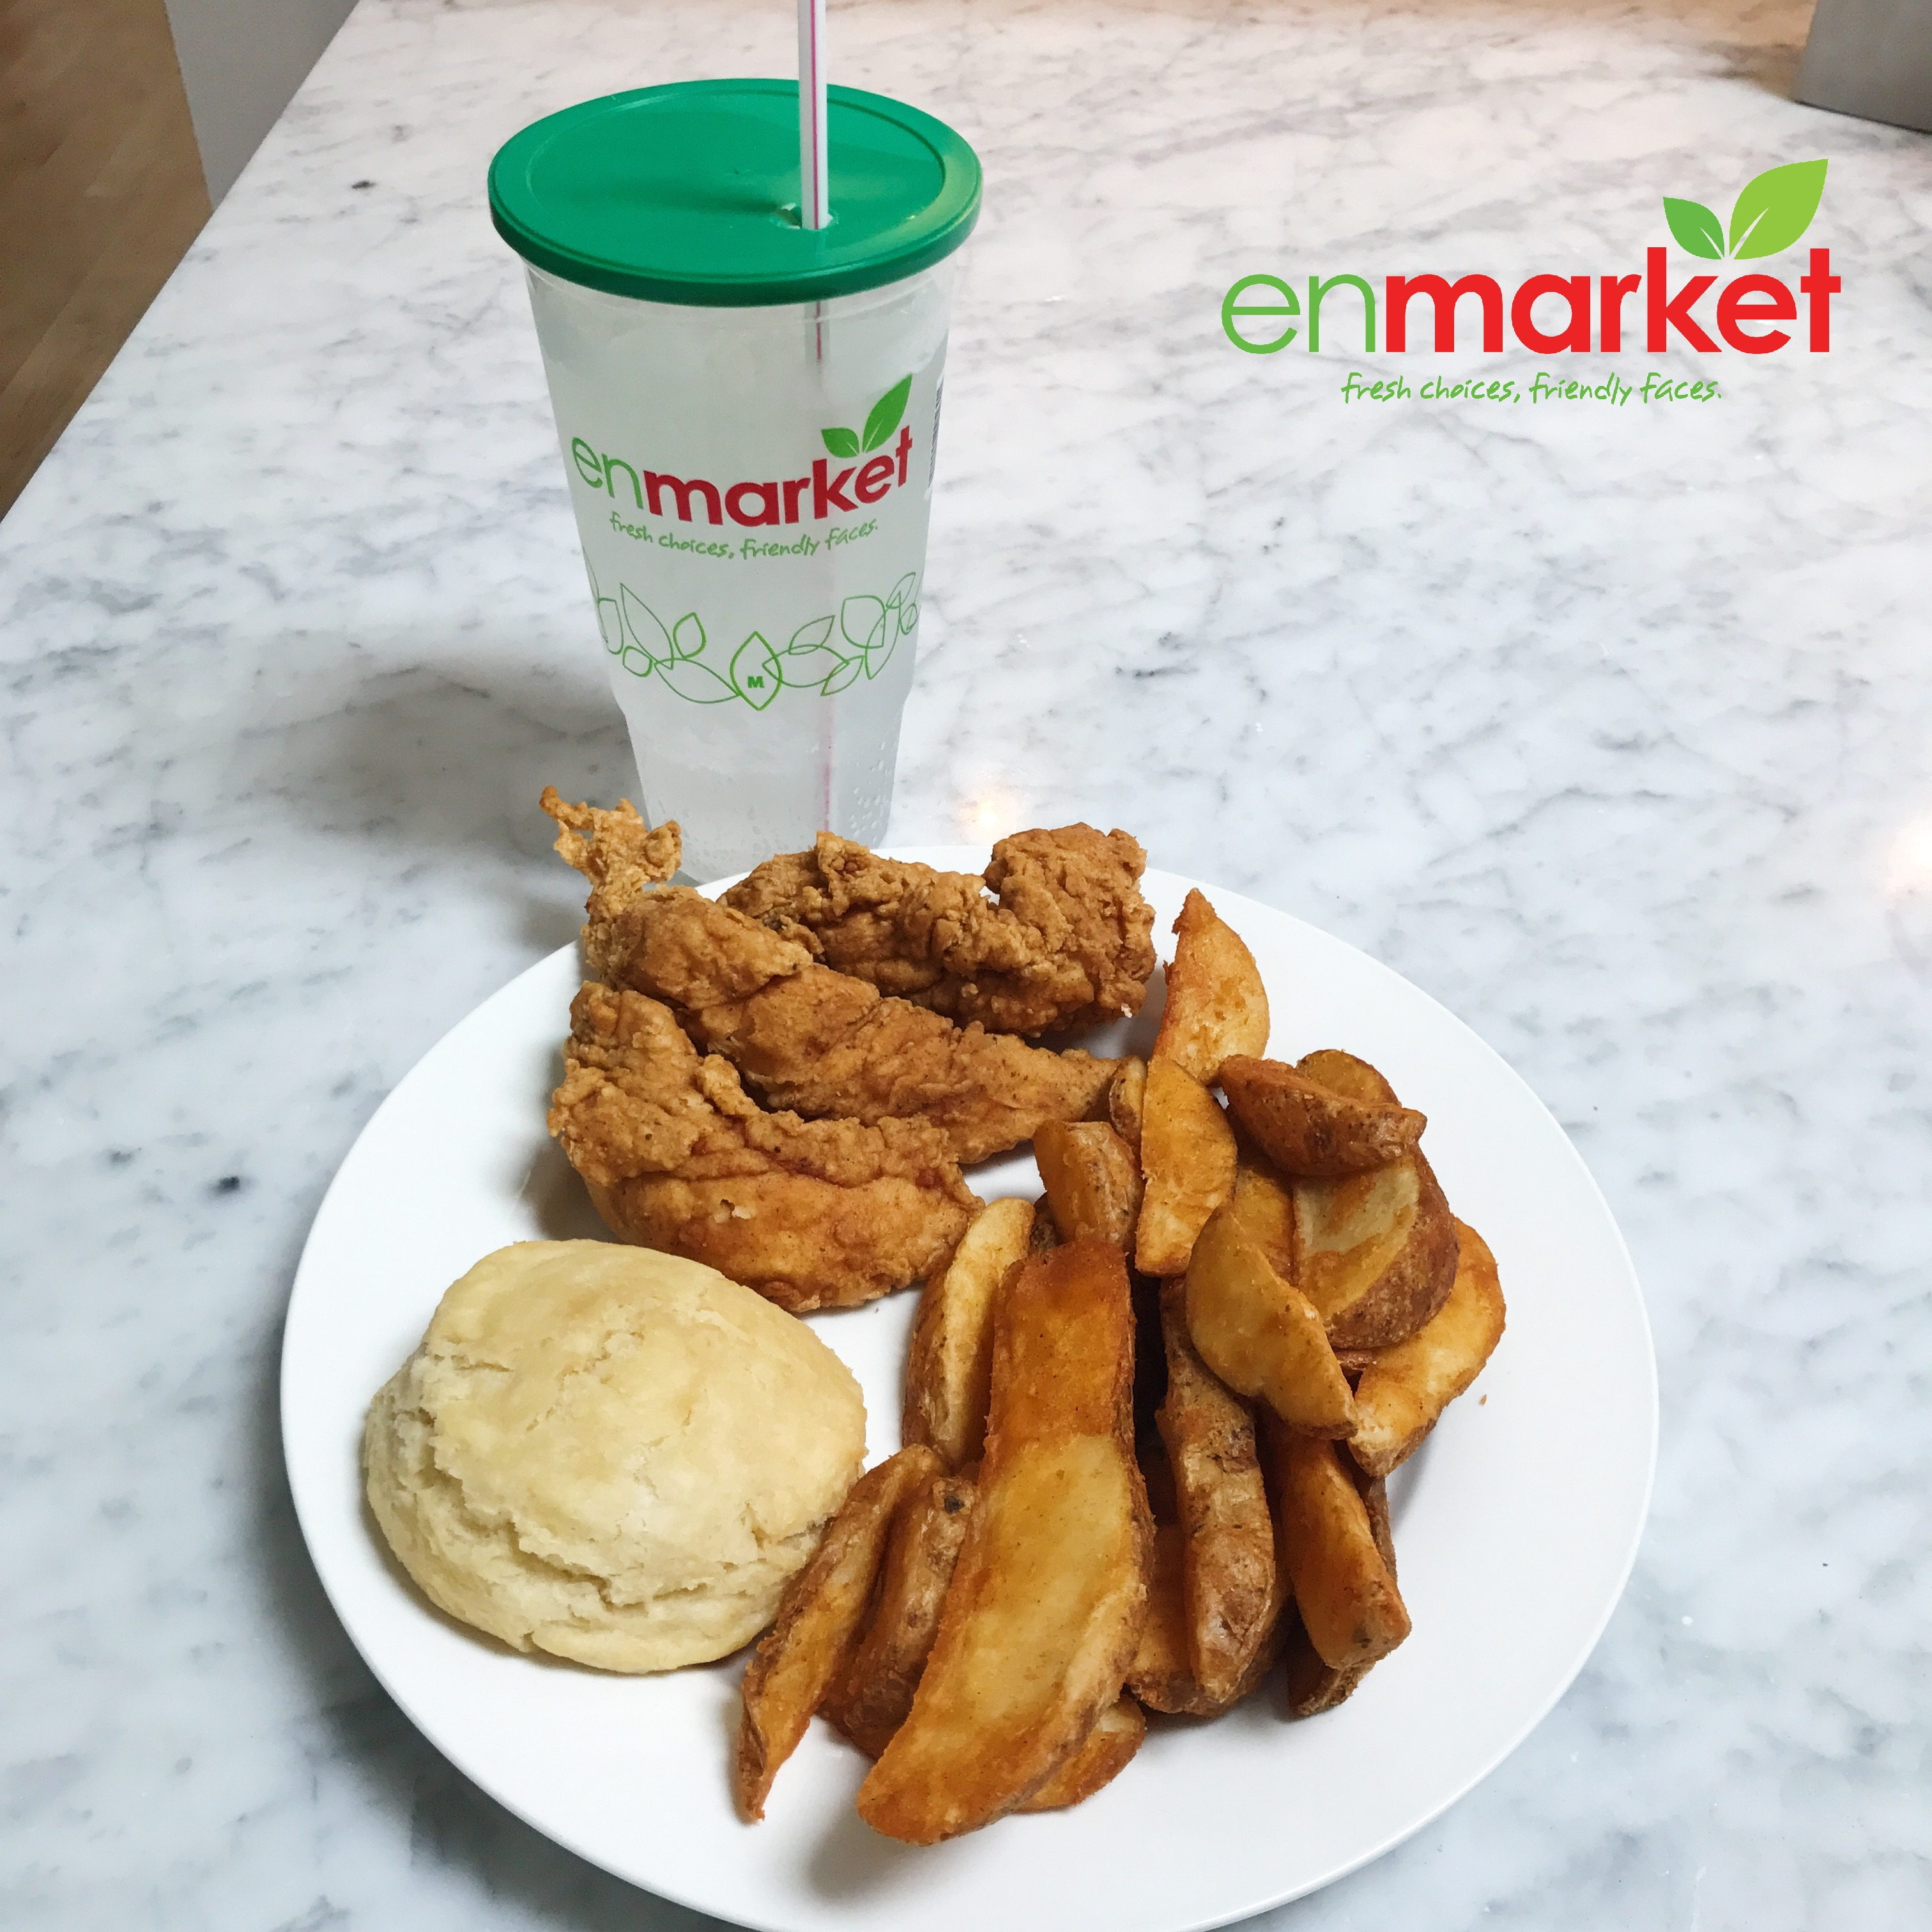 Enmarket Fresh Chicken Tender Meal